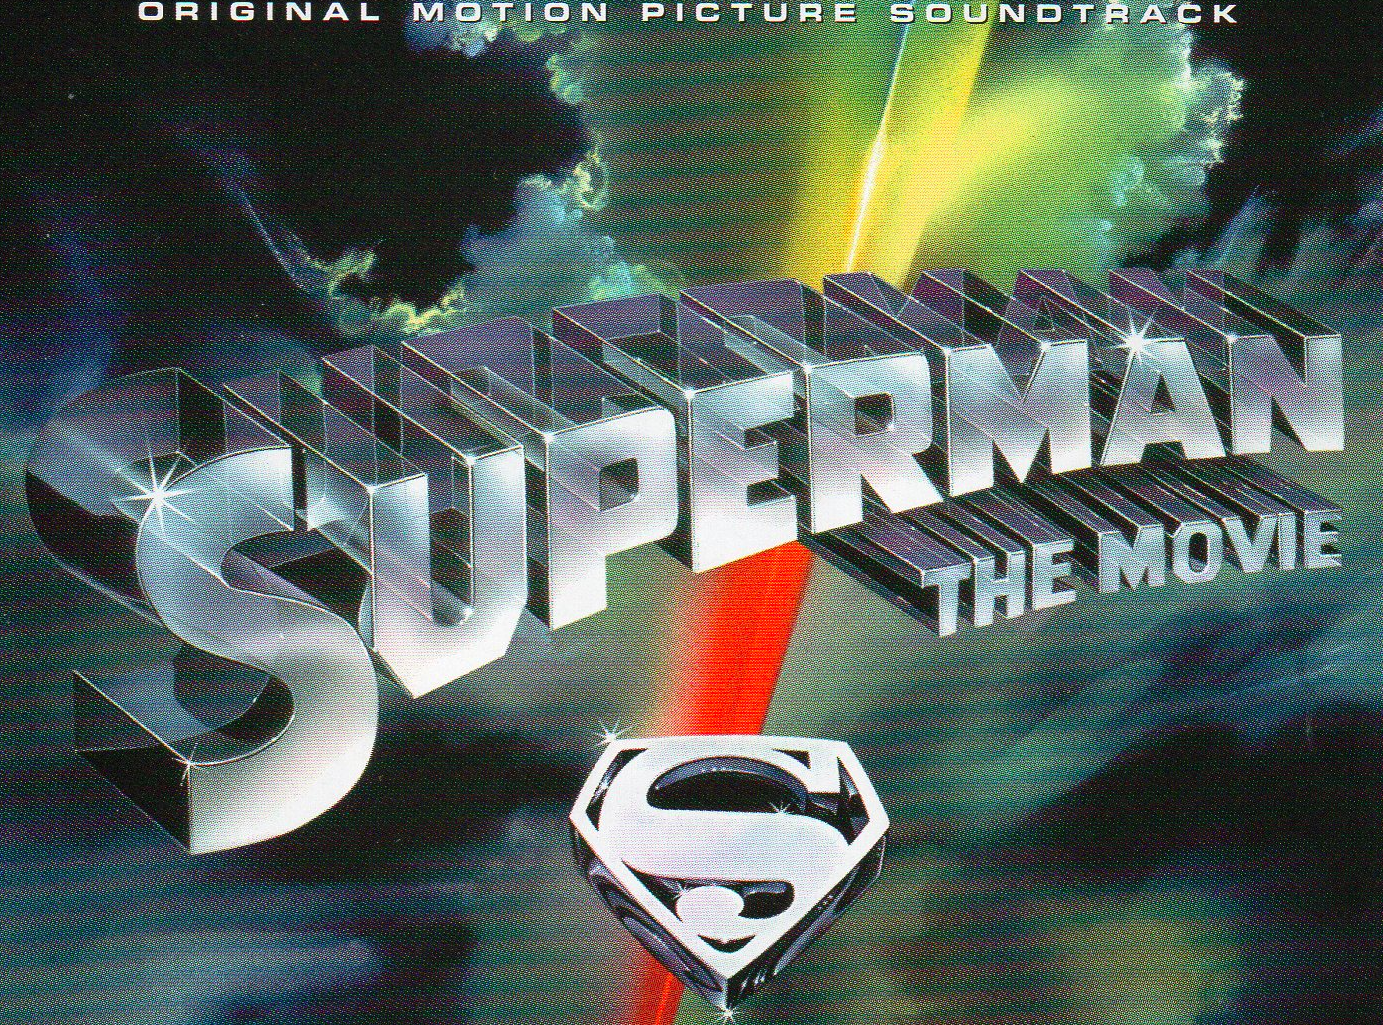 Why The 1978 Superman Soundtrack Works So Damn Well